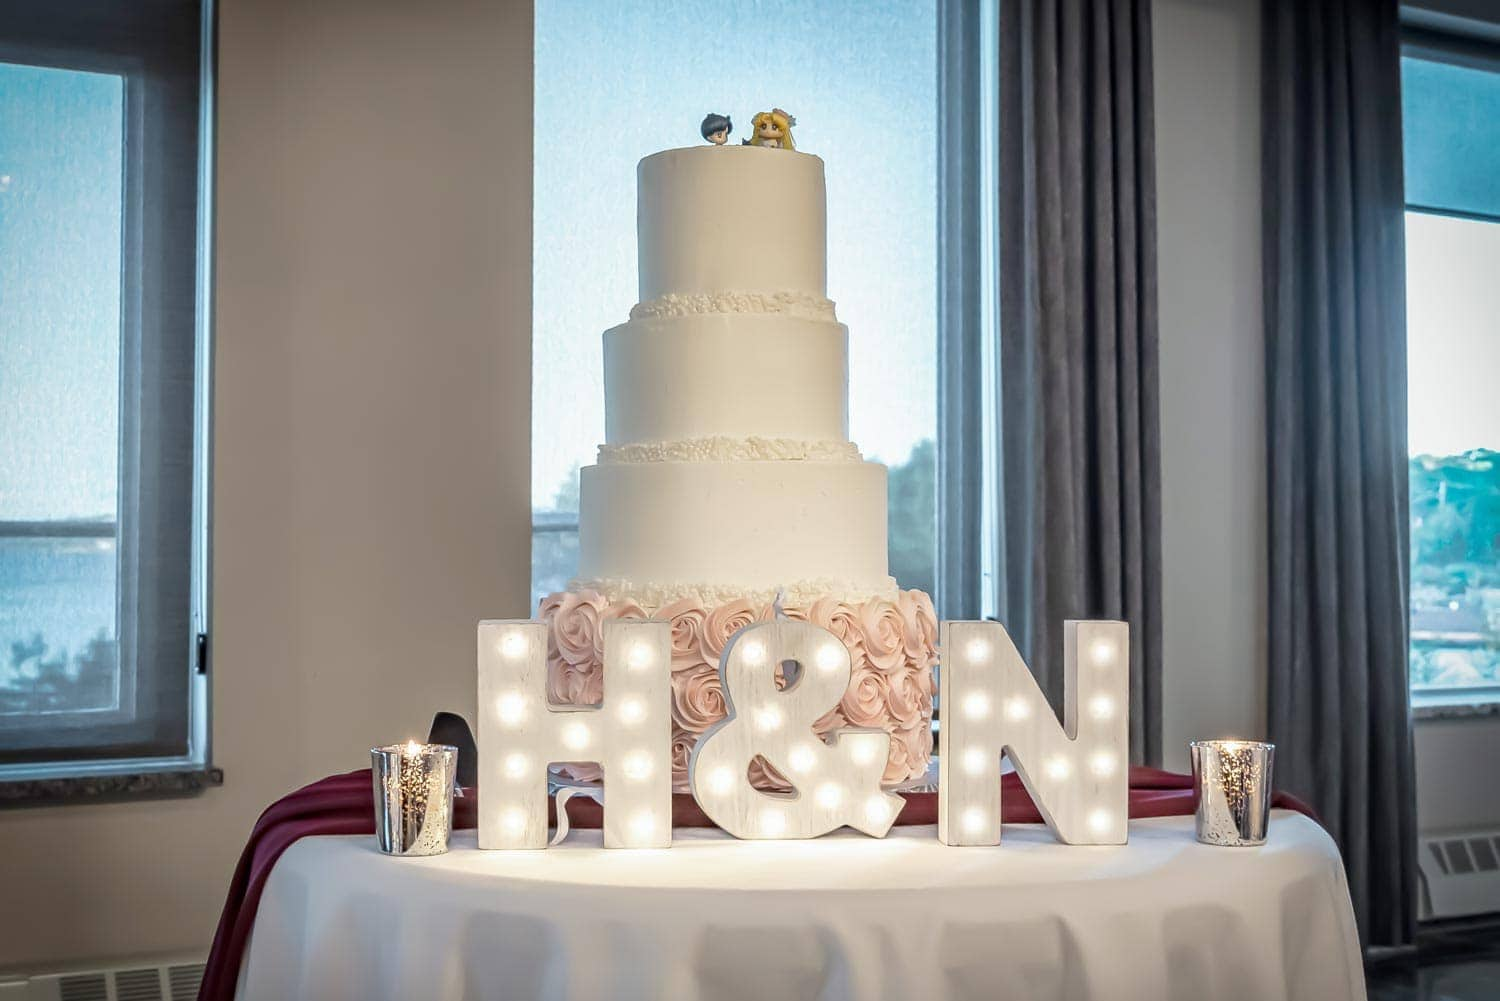 A 4 tier wedding cake with figurine wedding cake toppers and marquee letters lit up at the Bedford Basin Market.